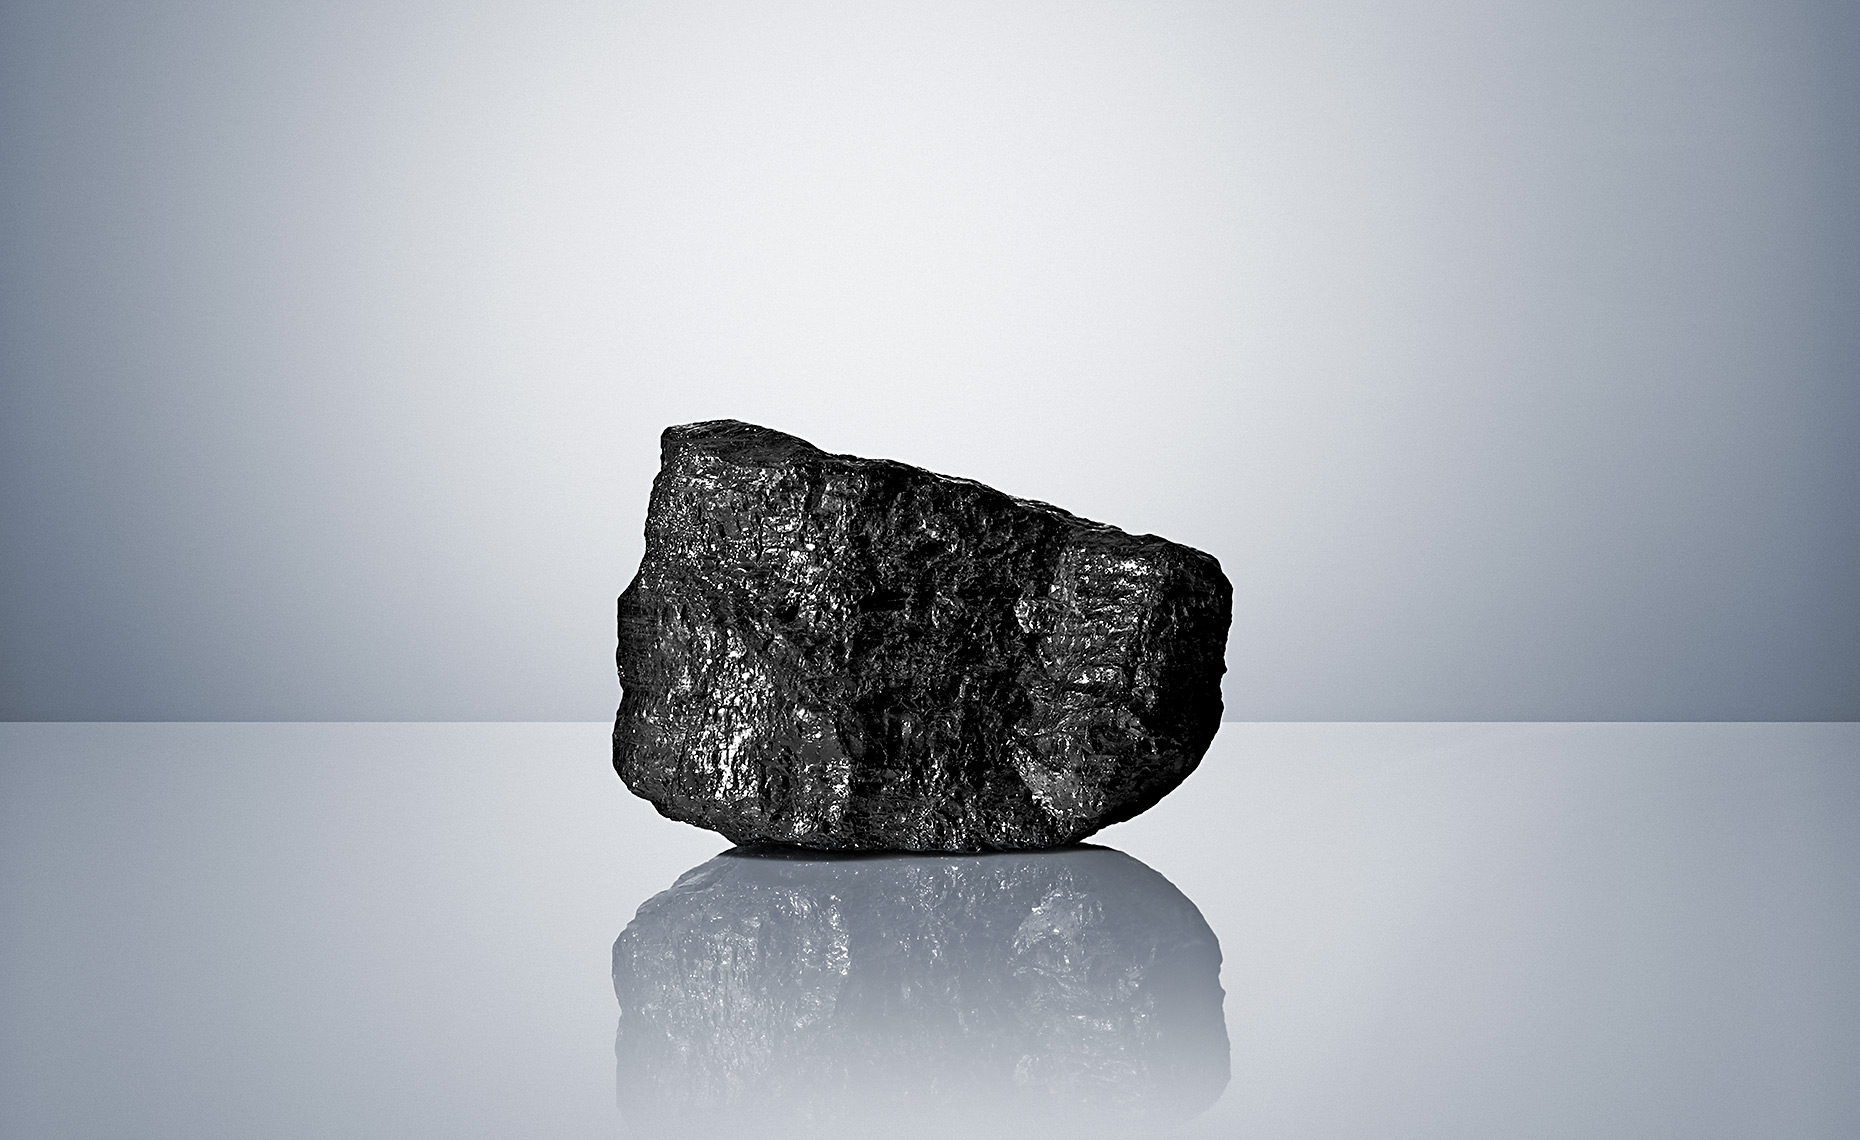 Lump Of Coal, Greg Shapps, Shapps Photography, LLC.